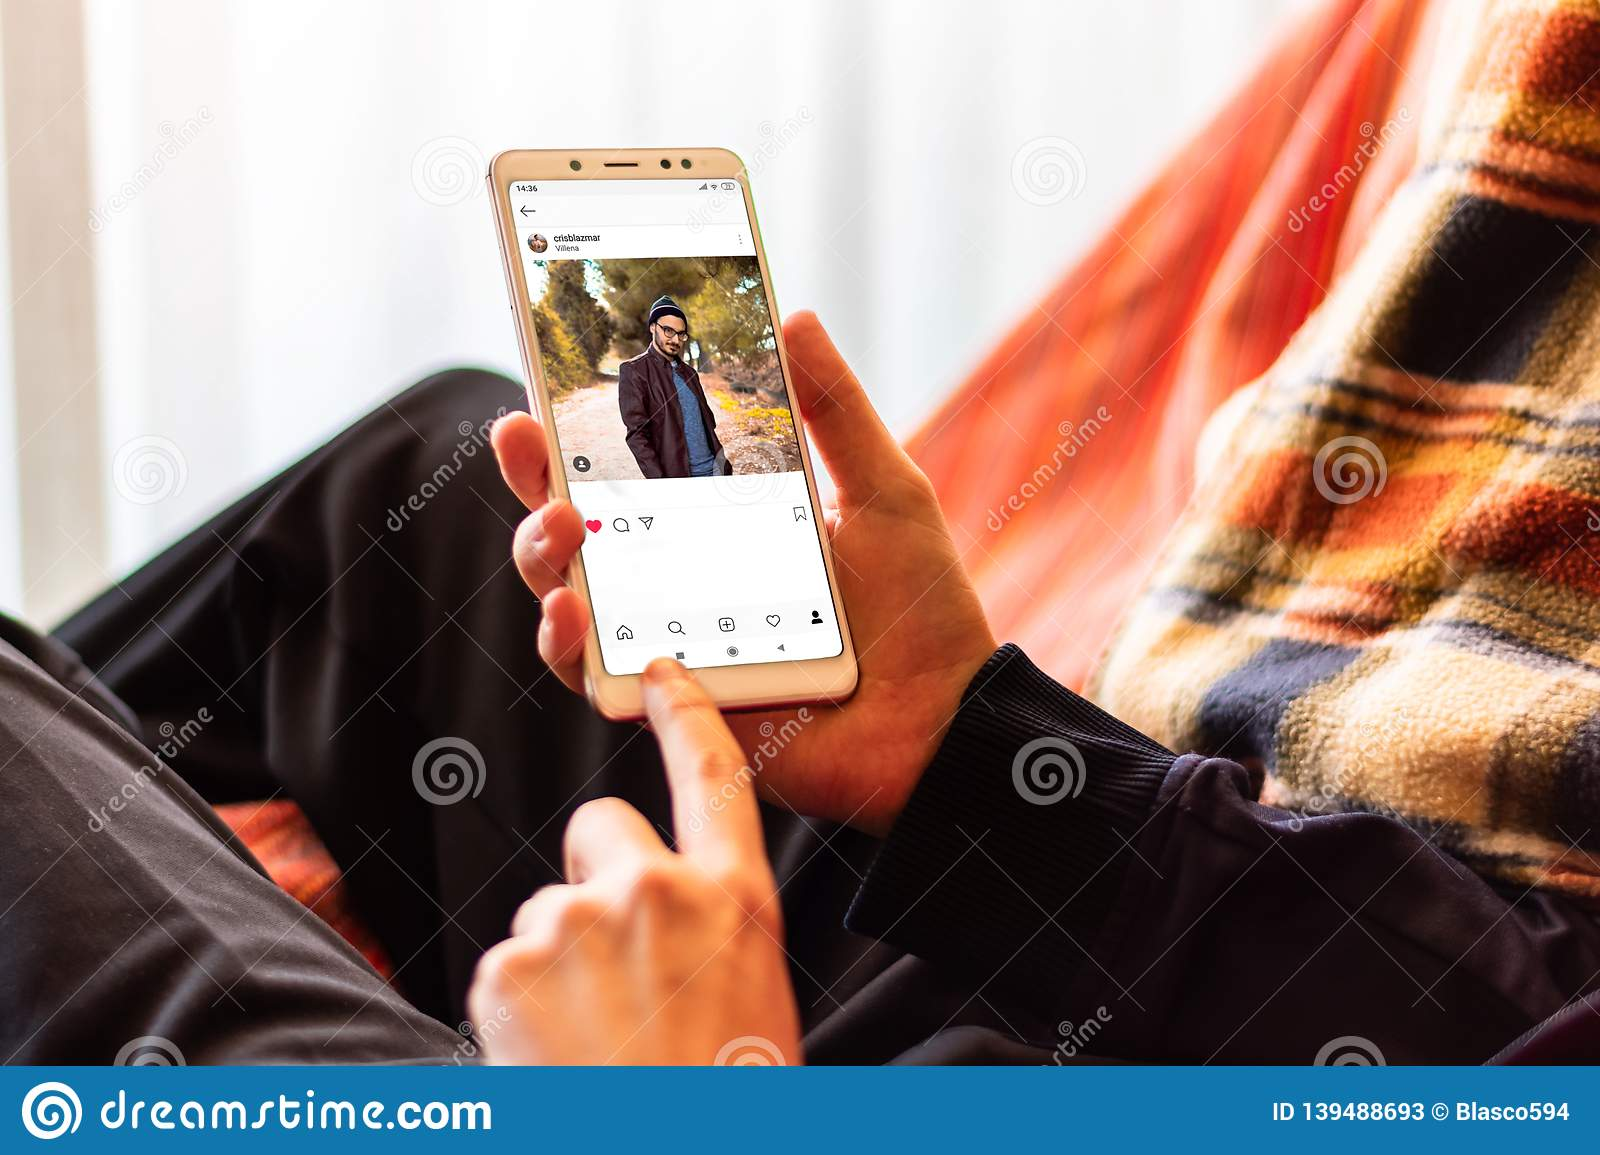 Man looking at photo sharing app on mobile phone